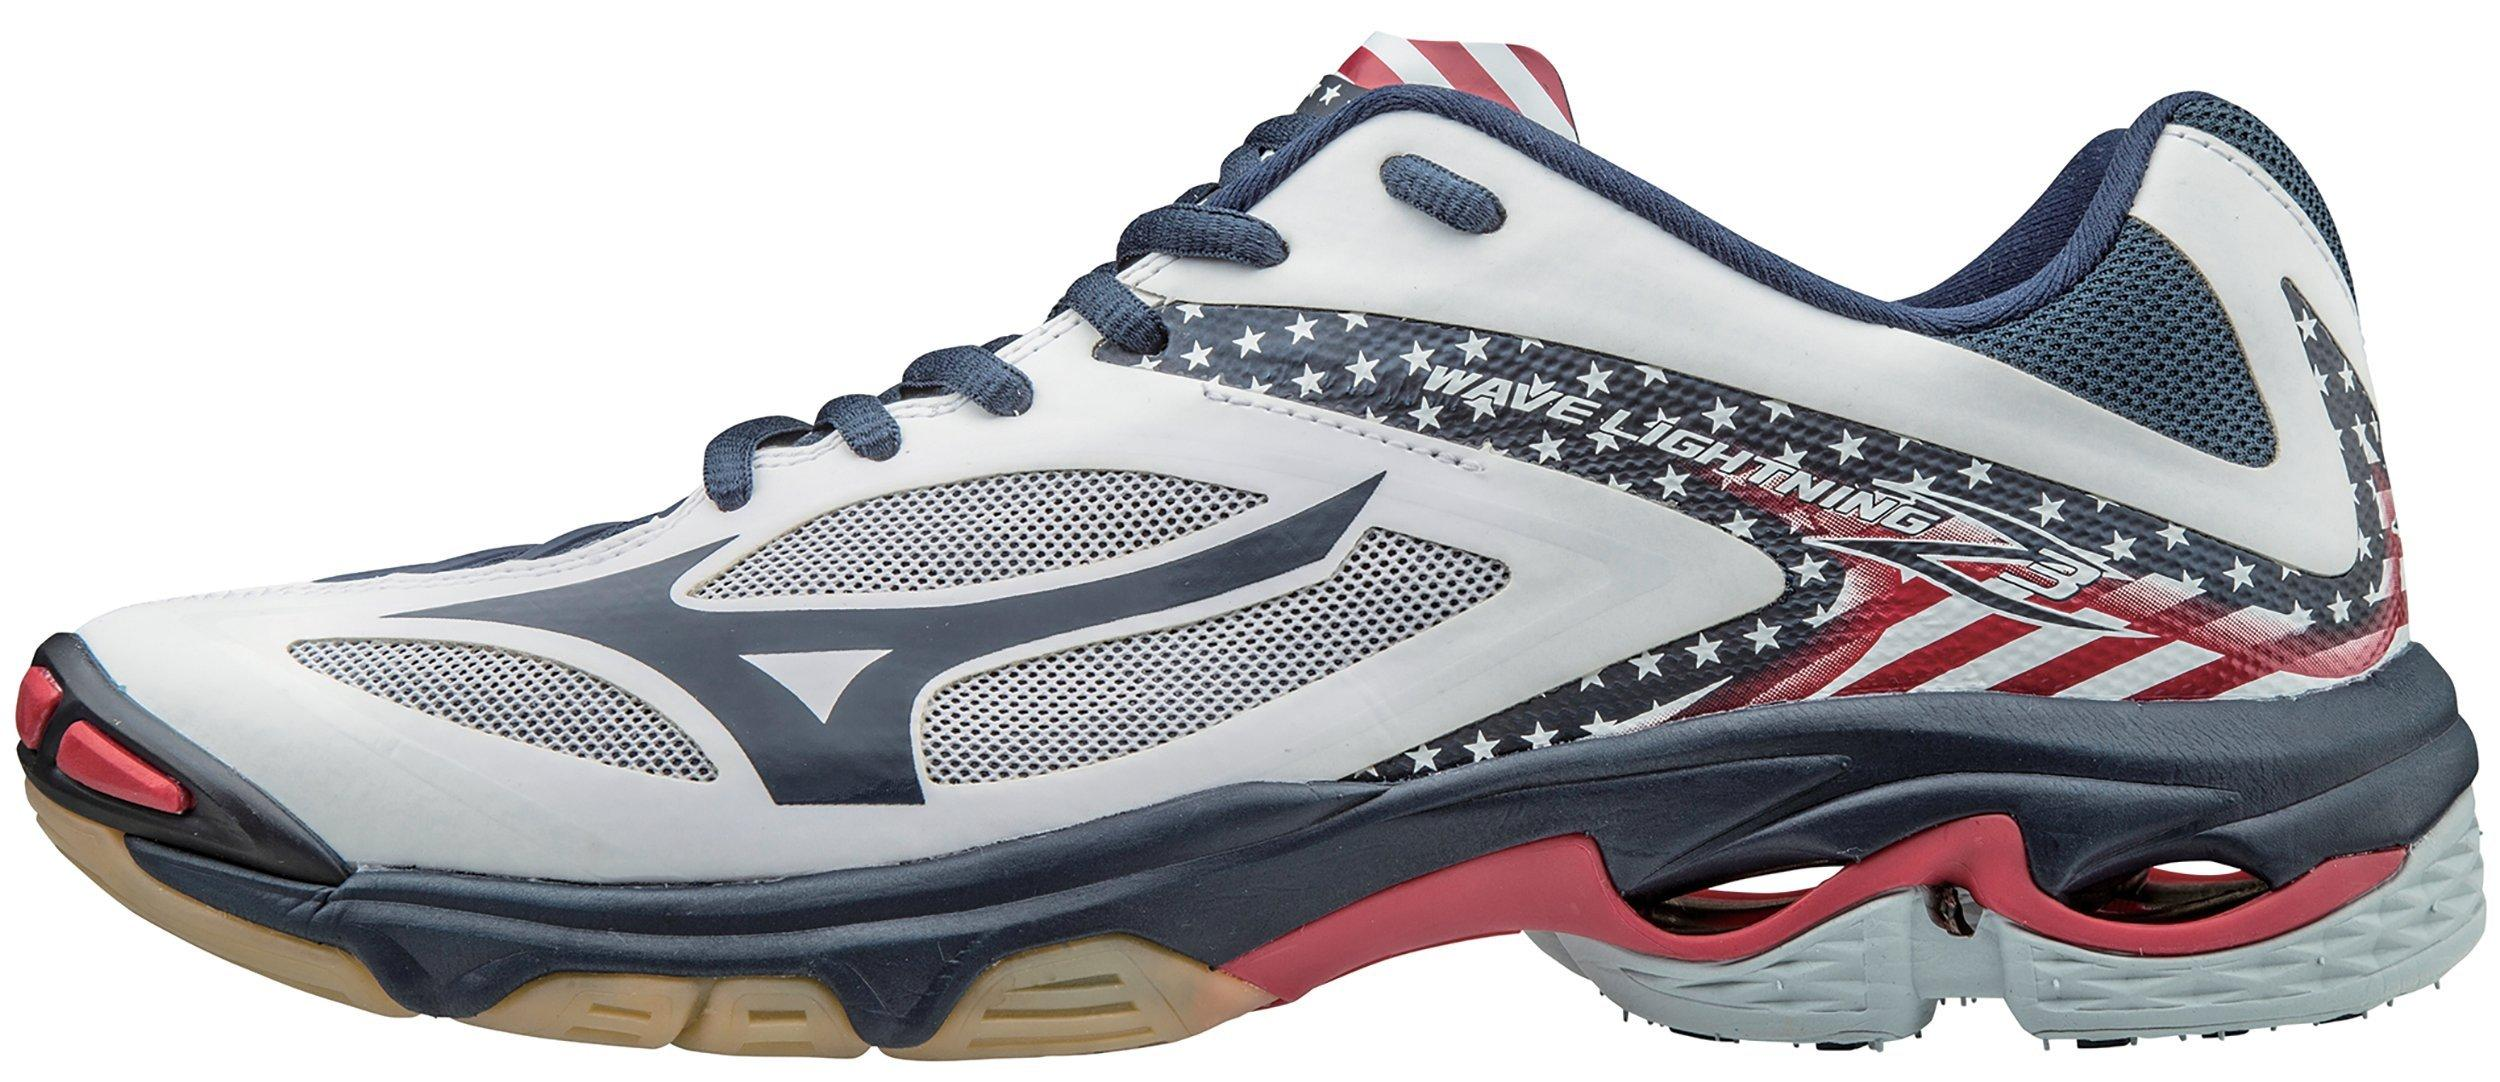 Mizuno  Mizuno Women s Wave Lightning Z3 Volleyball Shoes  f600f1b8b5c